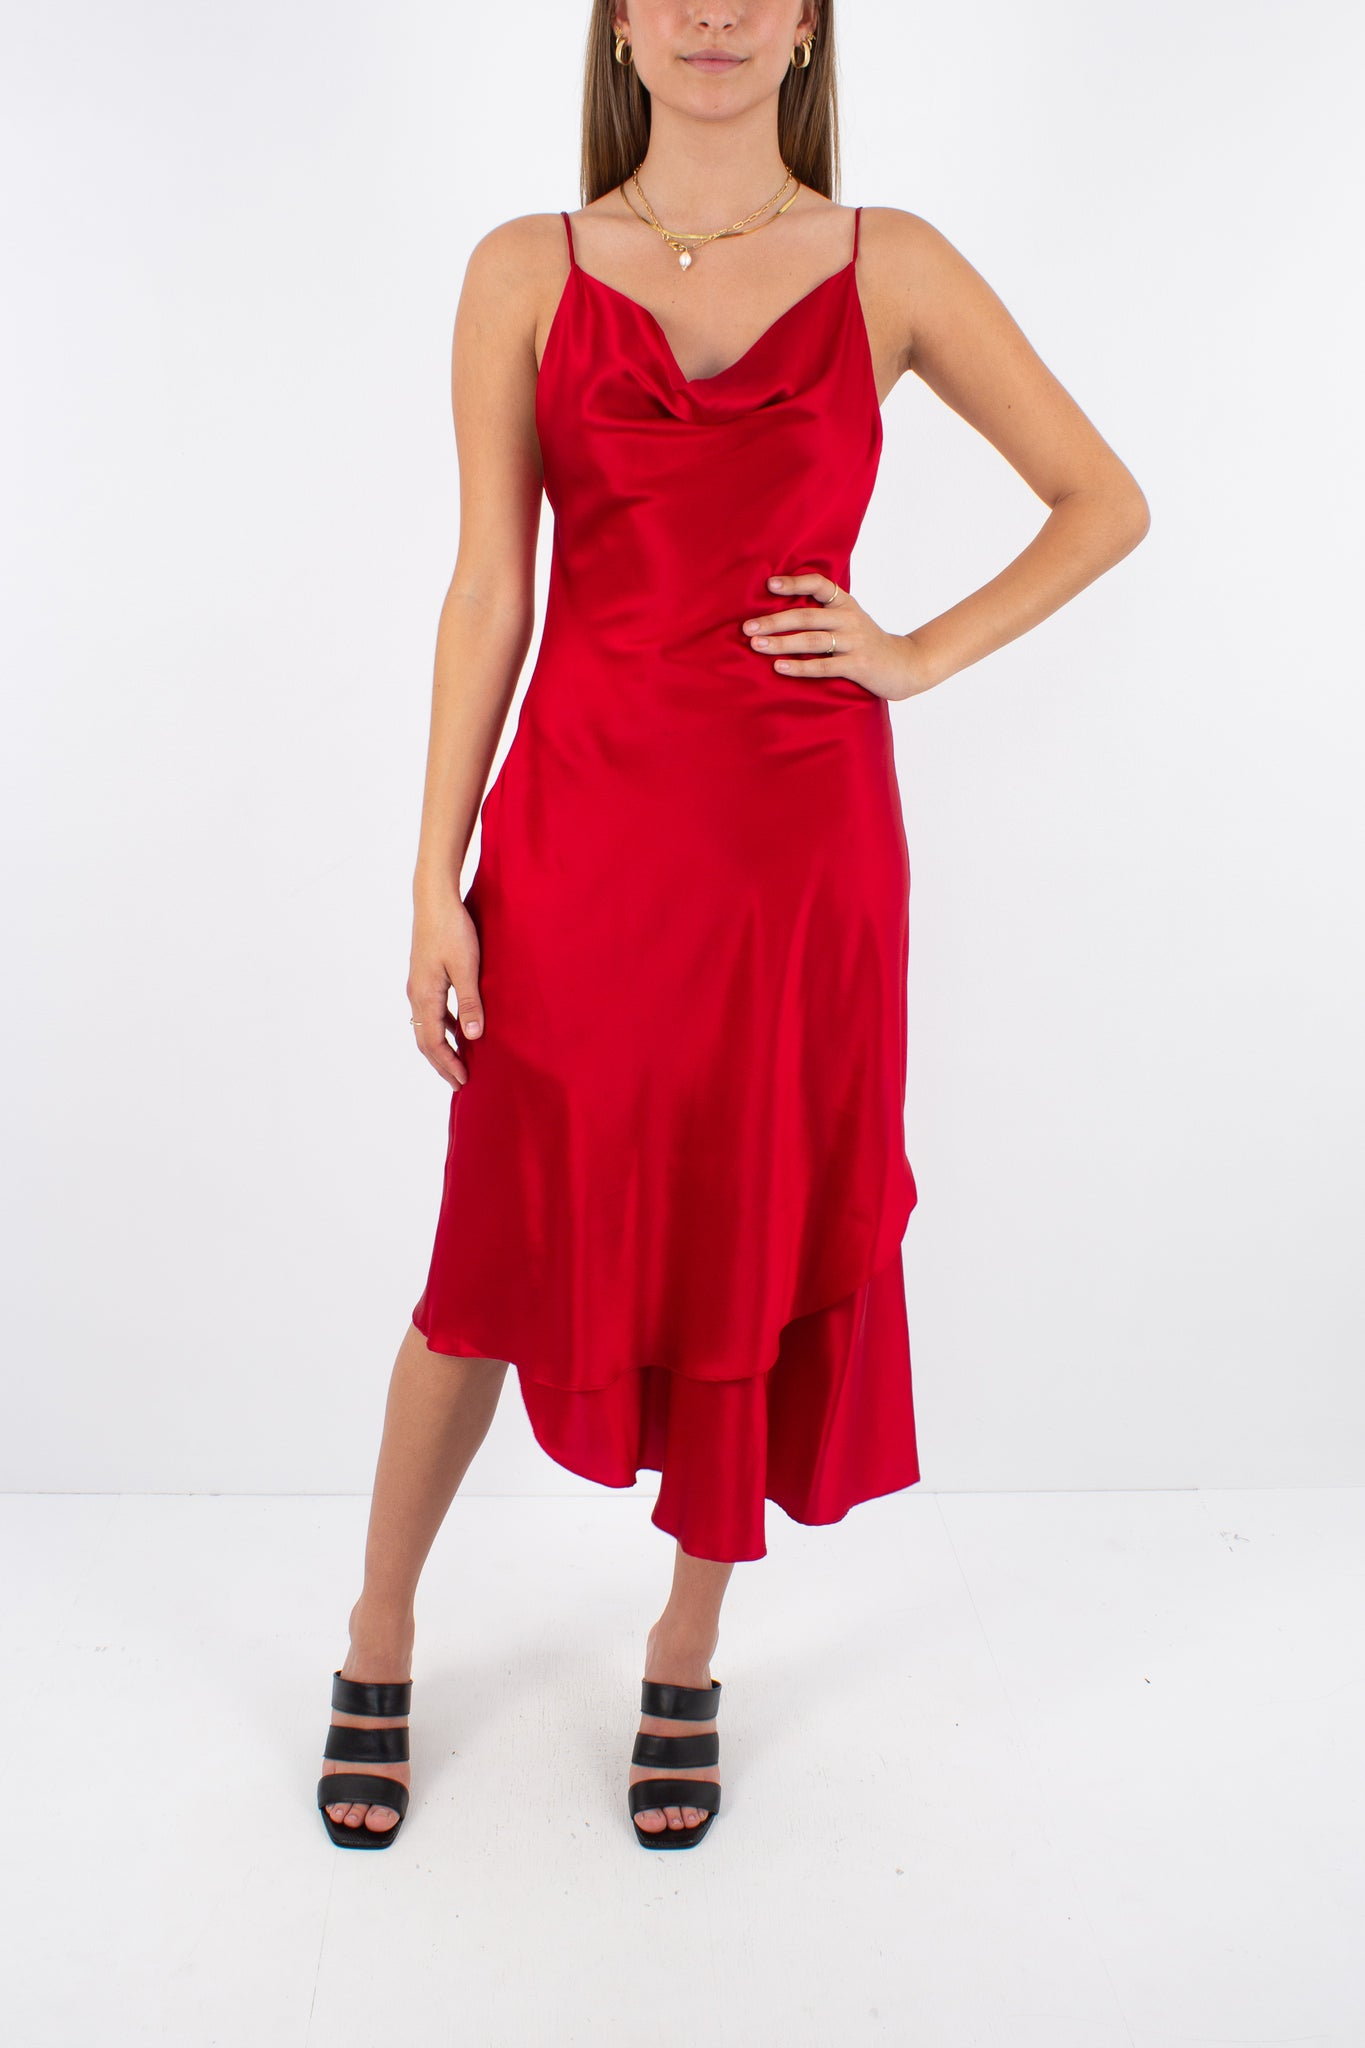 Asymmetrical Red Silk Midi Dress with Cowl Neckline - Size XS/S